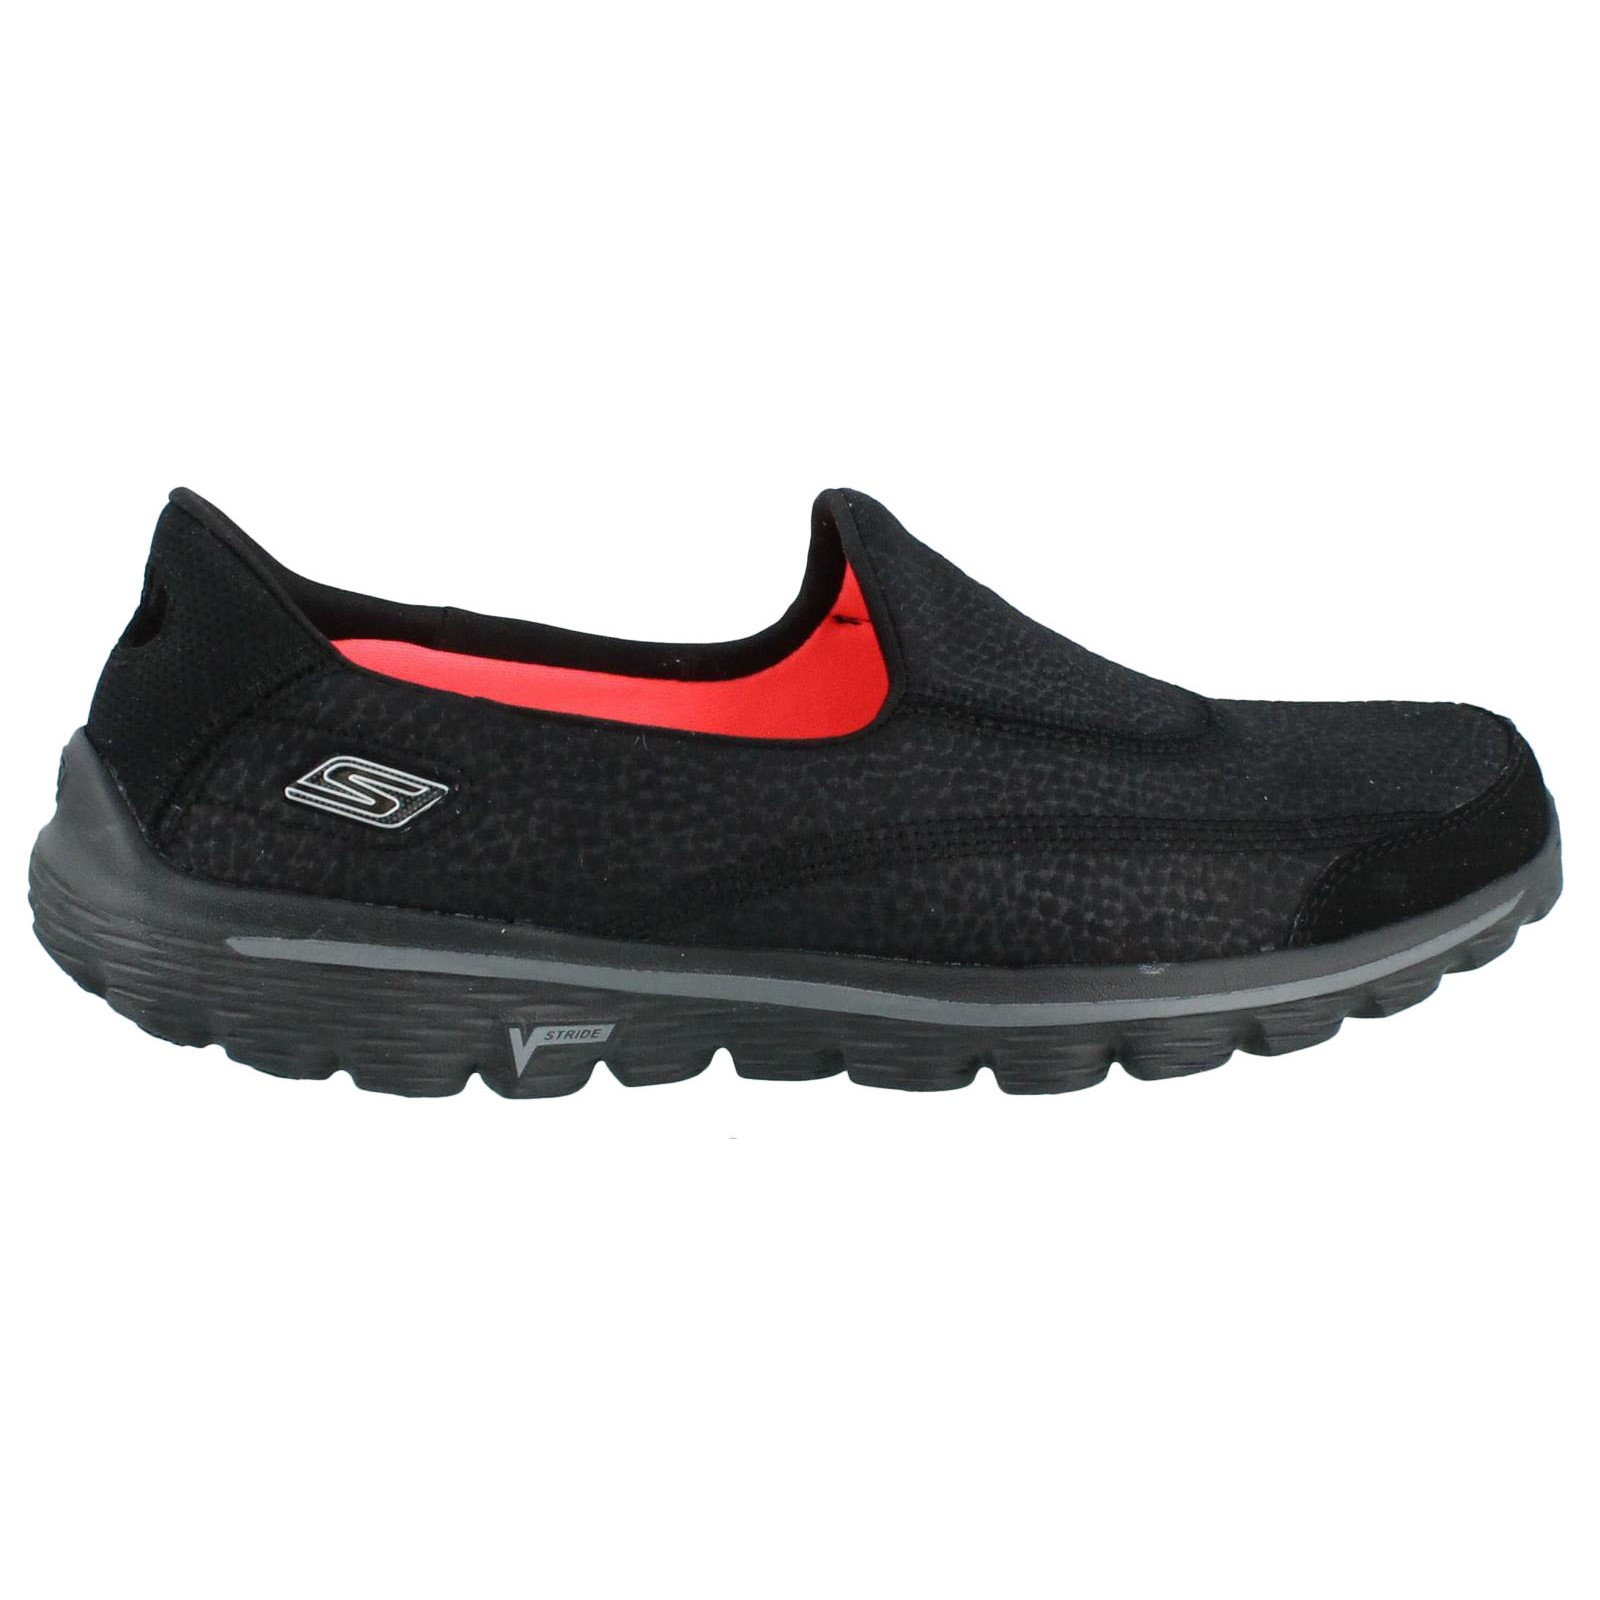 Women's Skechers, Go Walk Linear 2 Slip-on Shoe